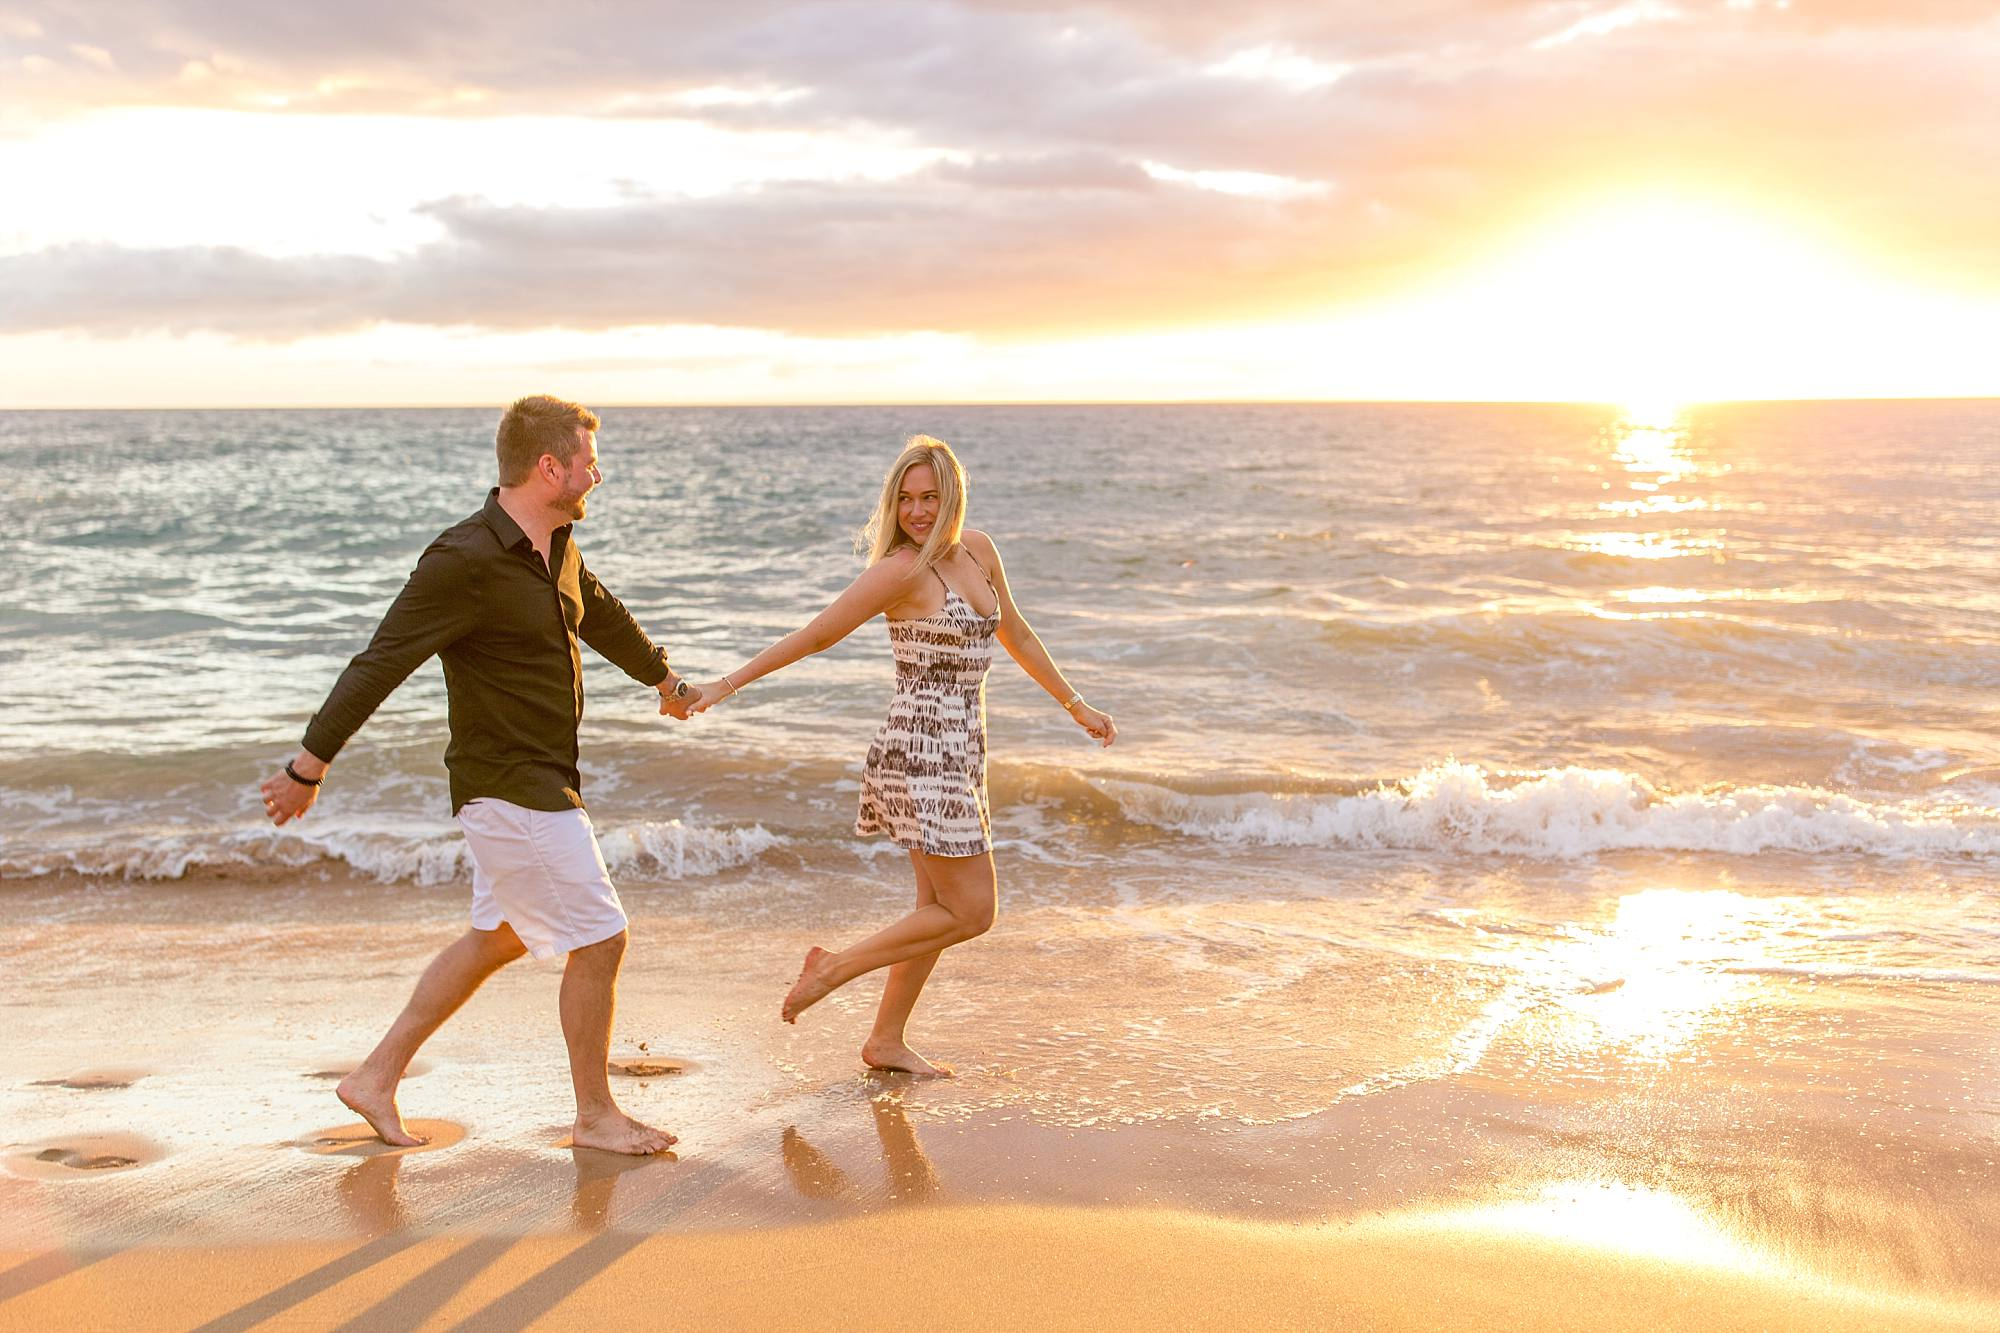 fiances running down beach together hand in hand and the way she's looking at him is full of love